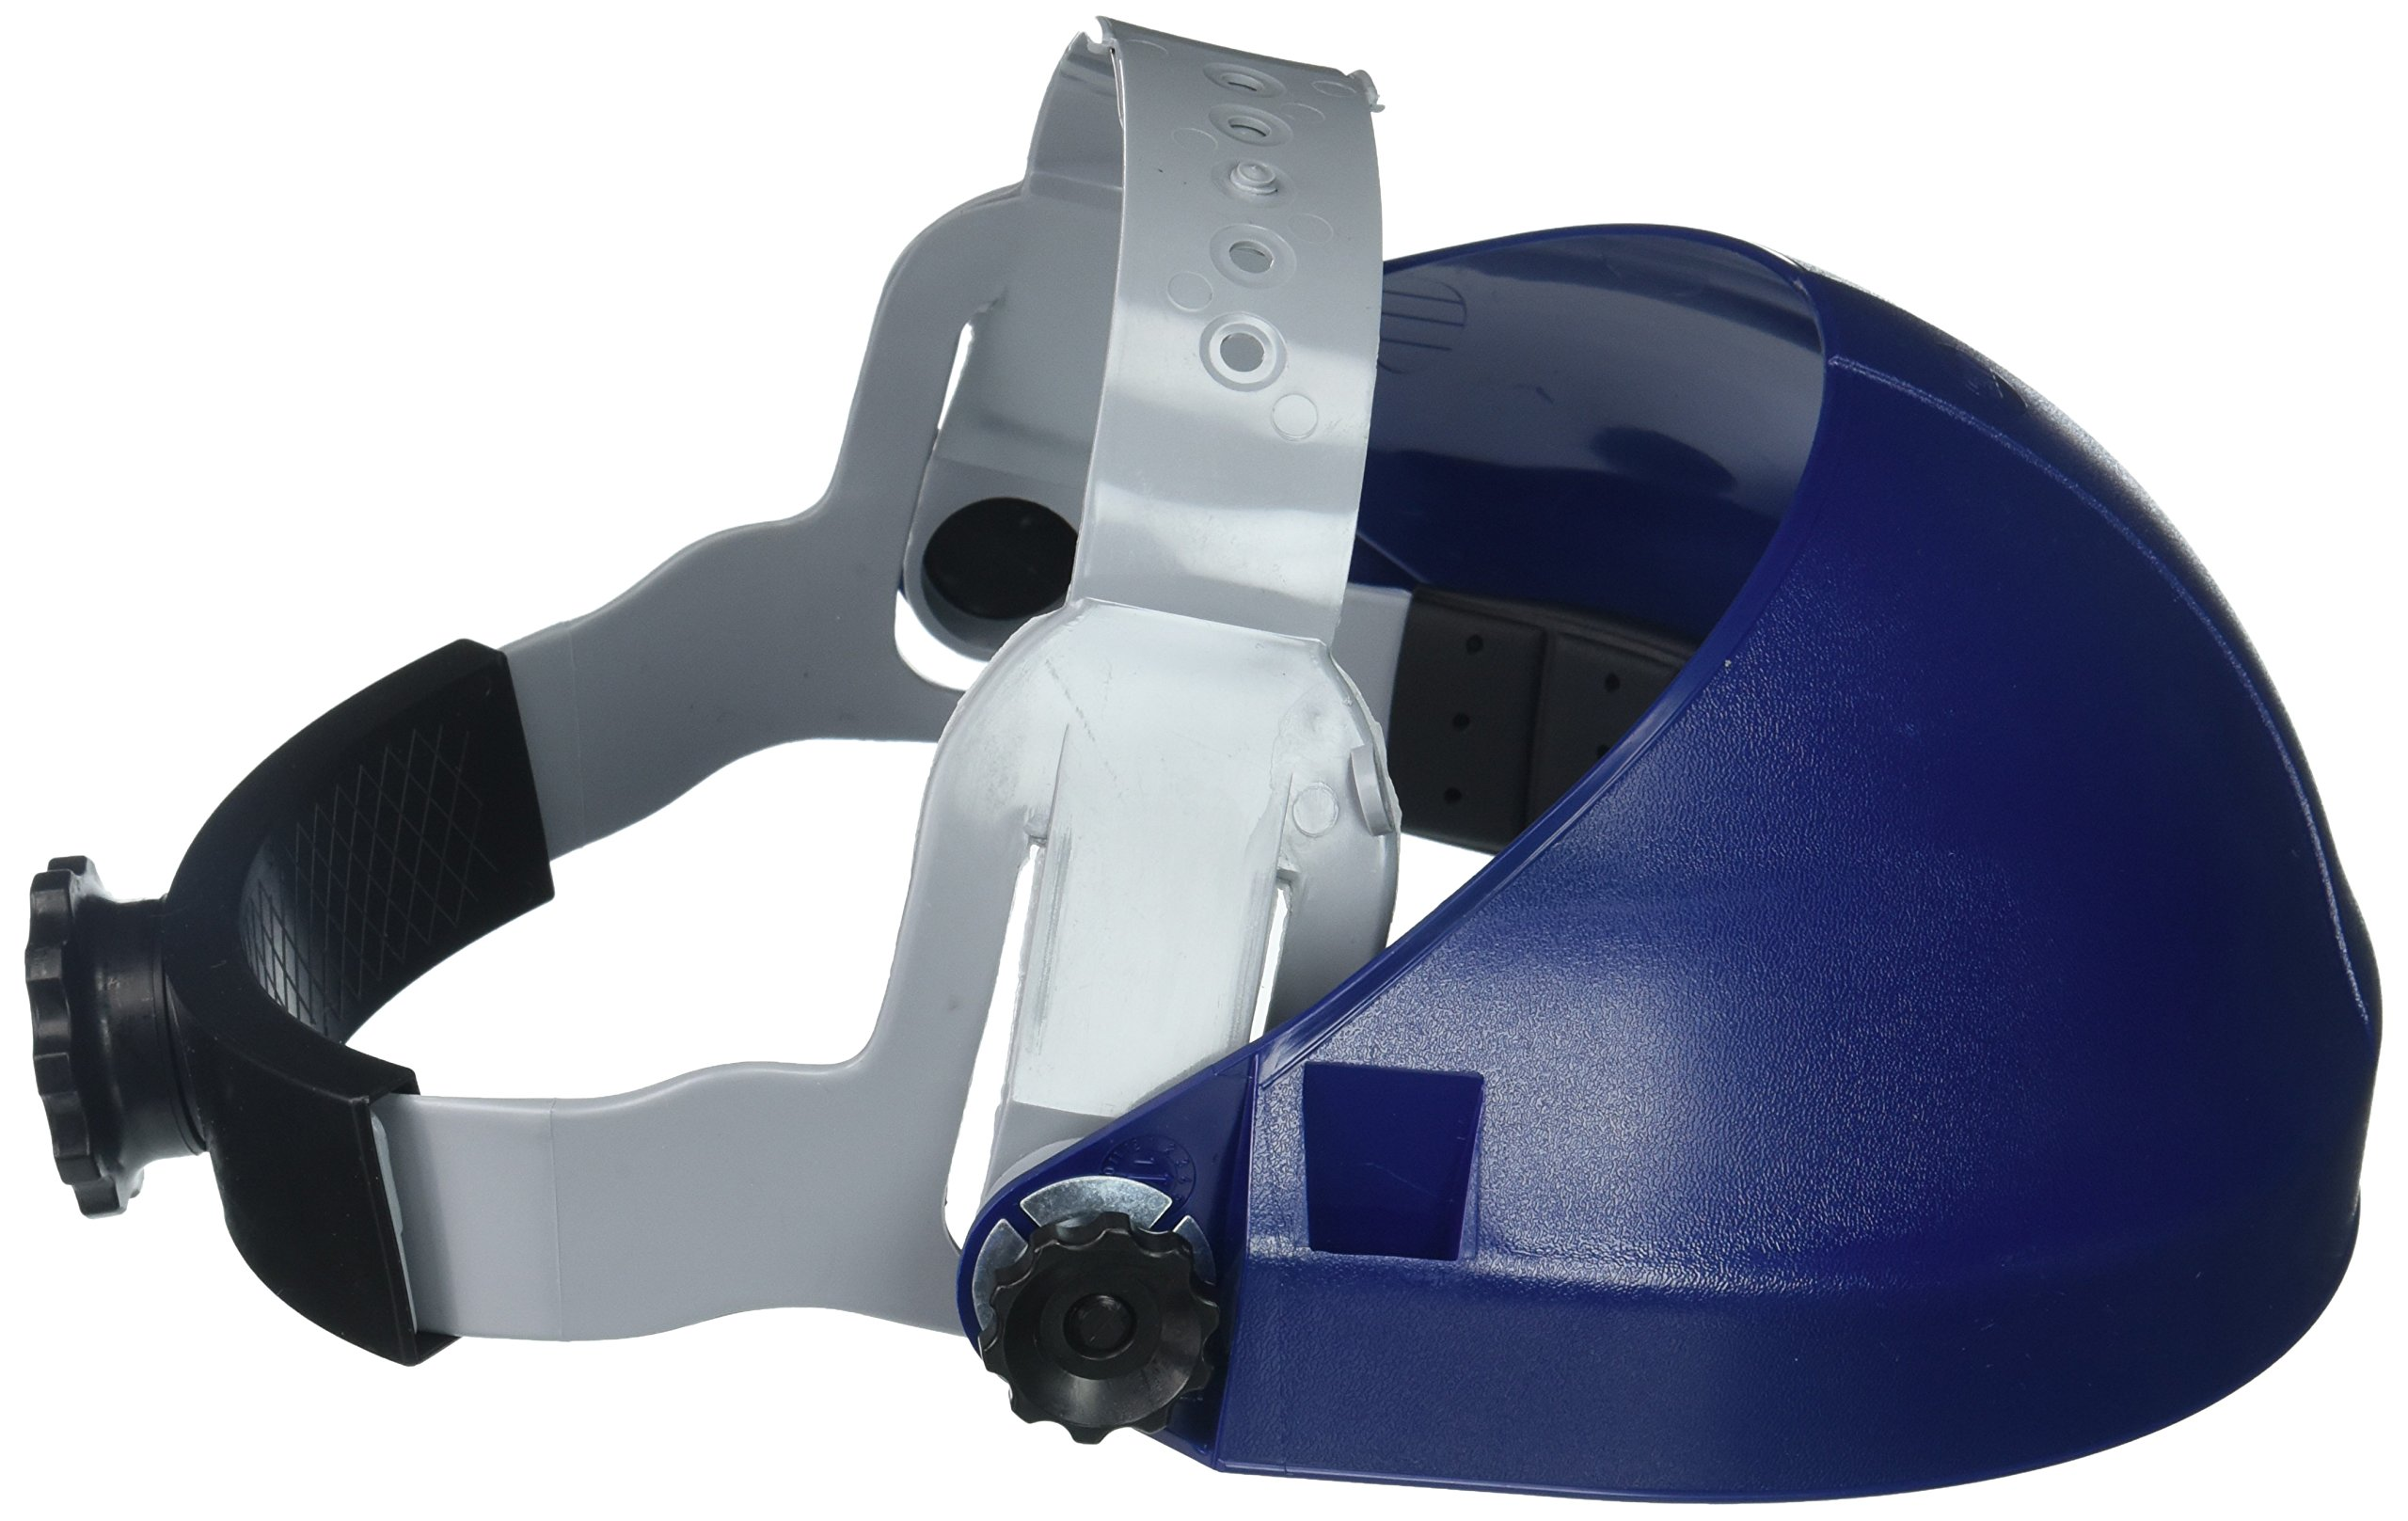 3M MMM8250100000 Tuffmaster Deluxe Headgear with Ratchet Adjustment